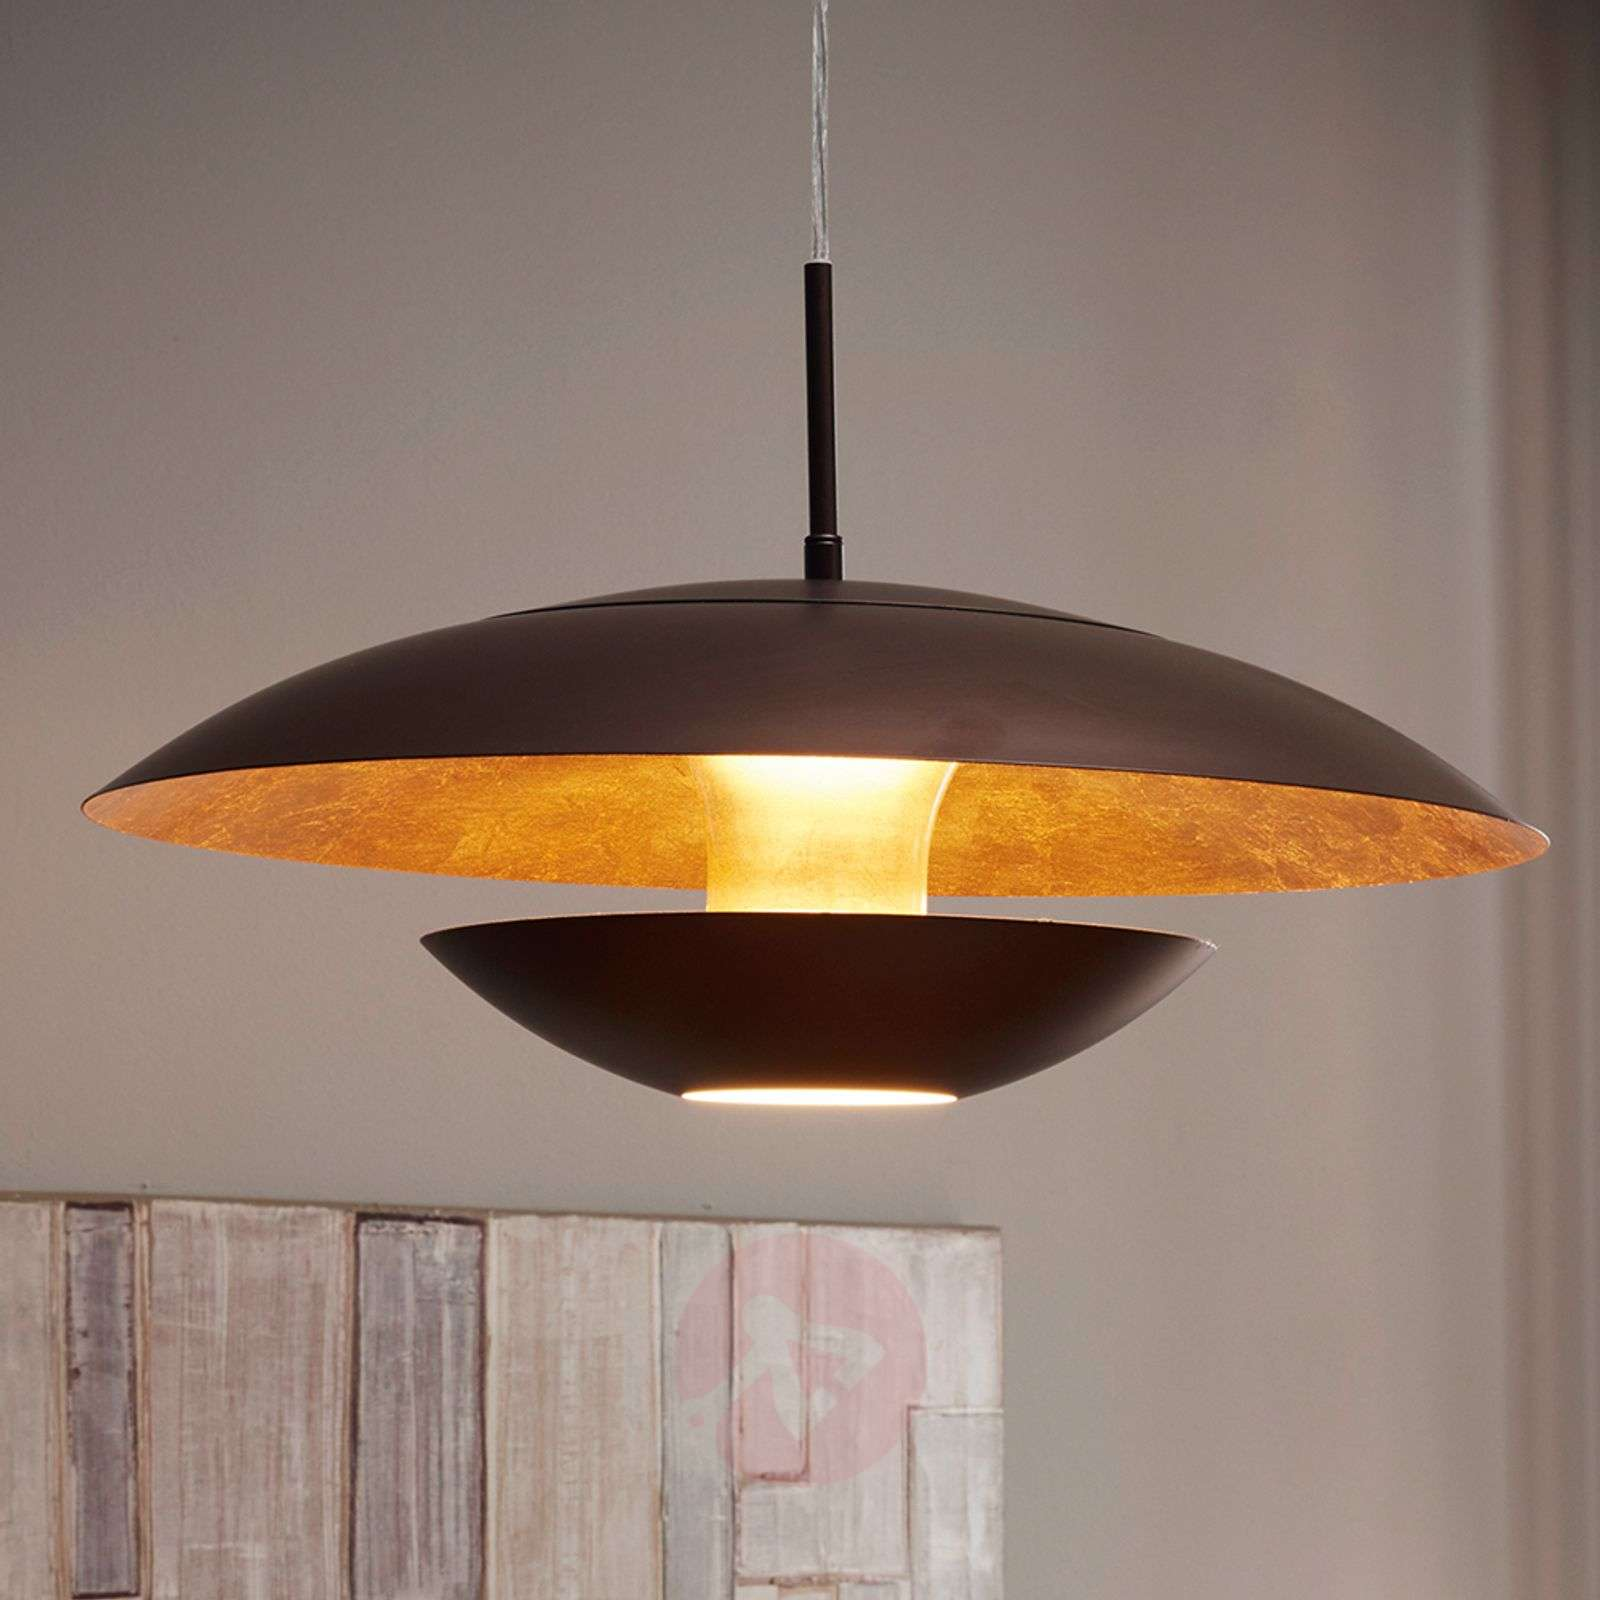 Brown-gold-painted hanging light Nuvano-3031942-01